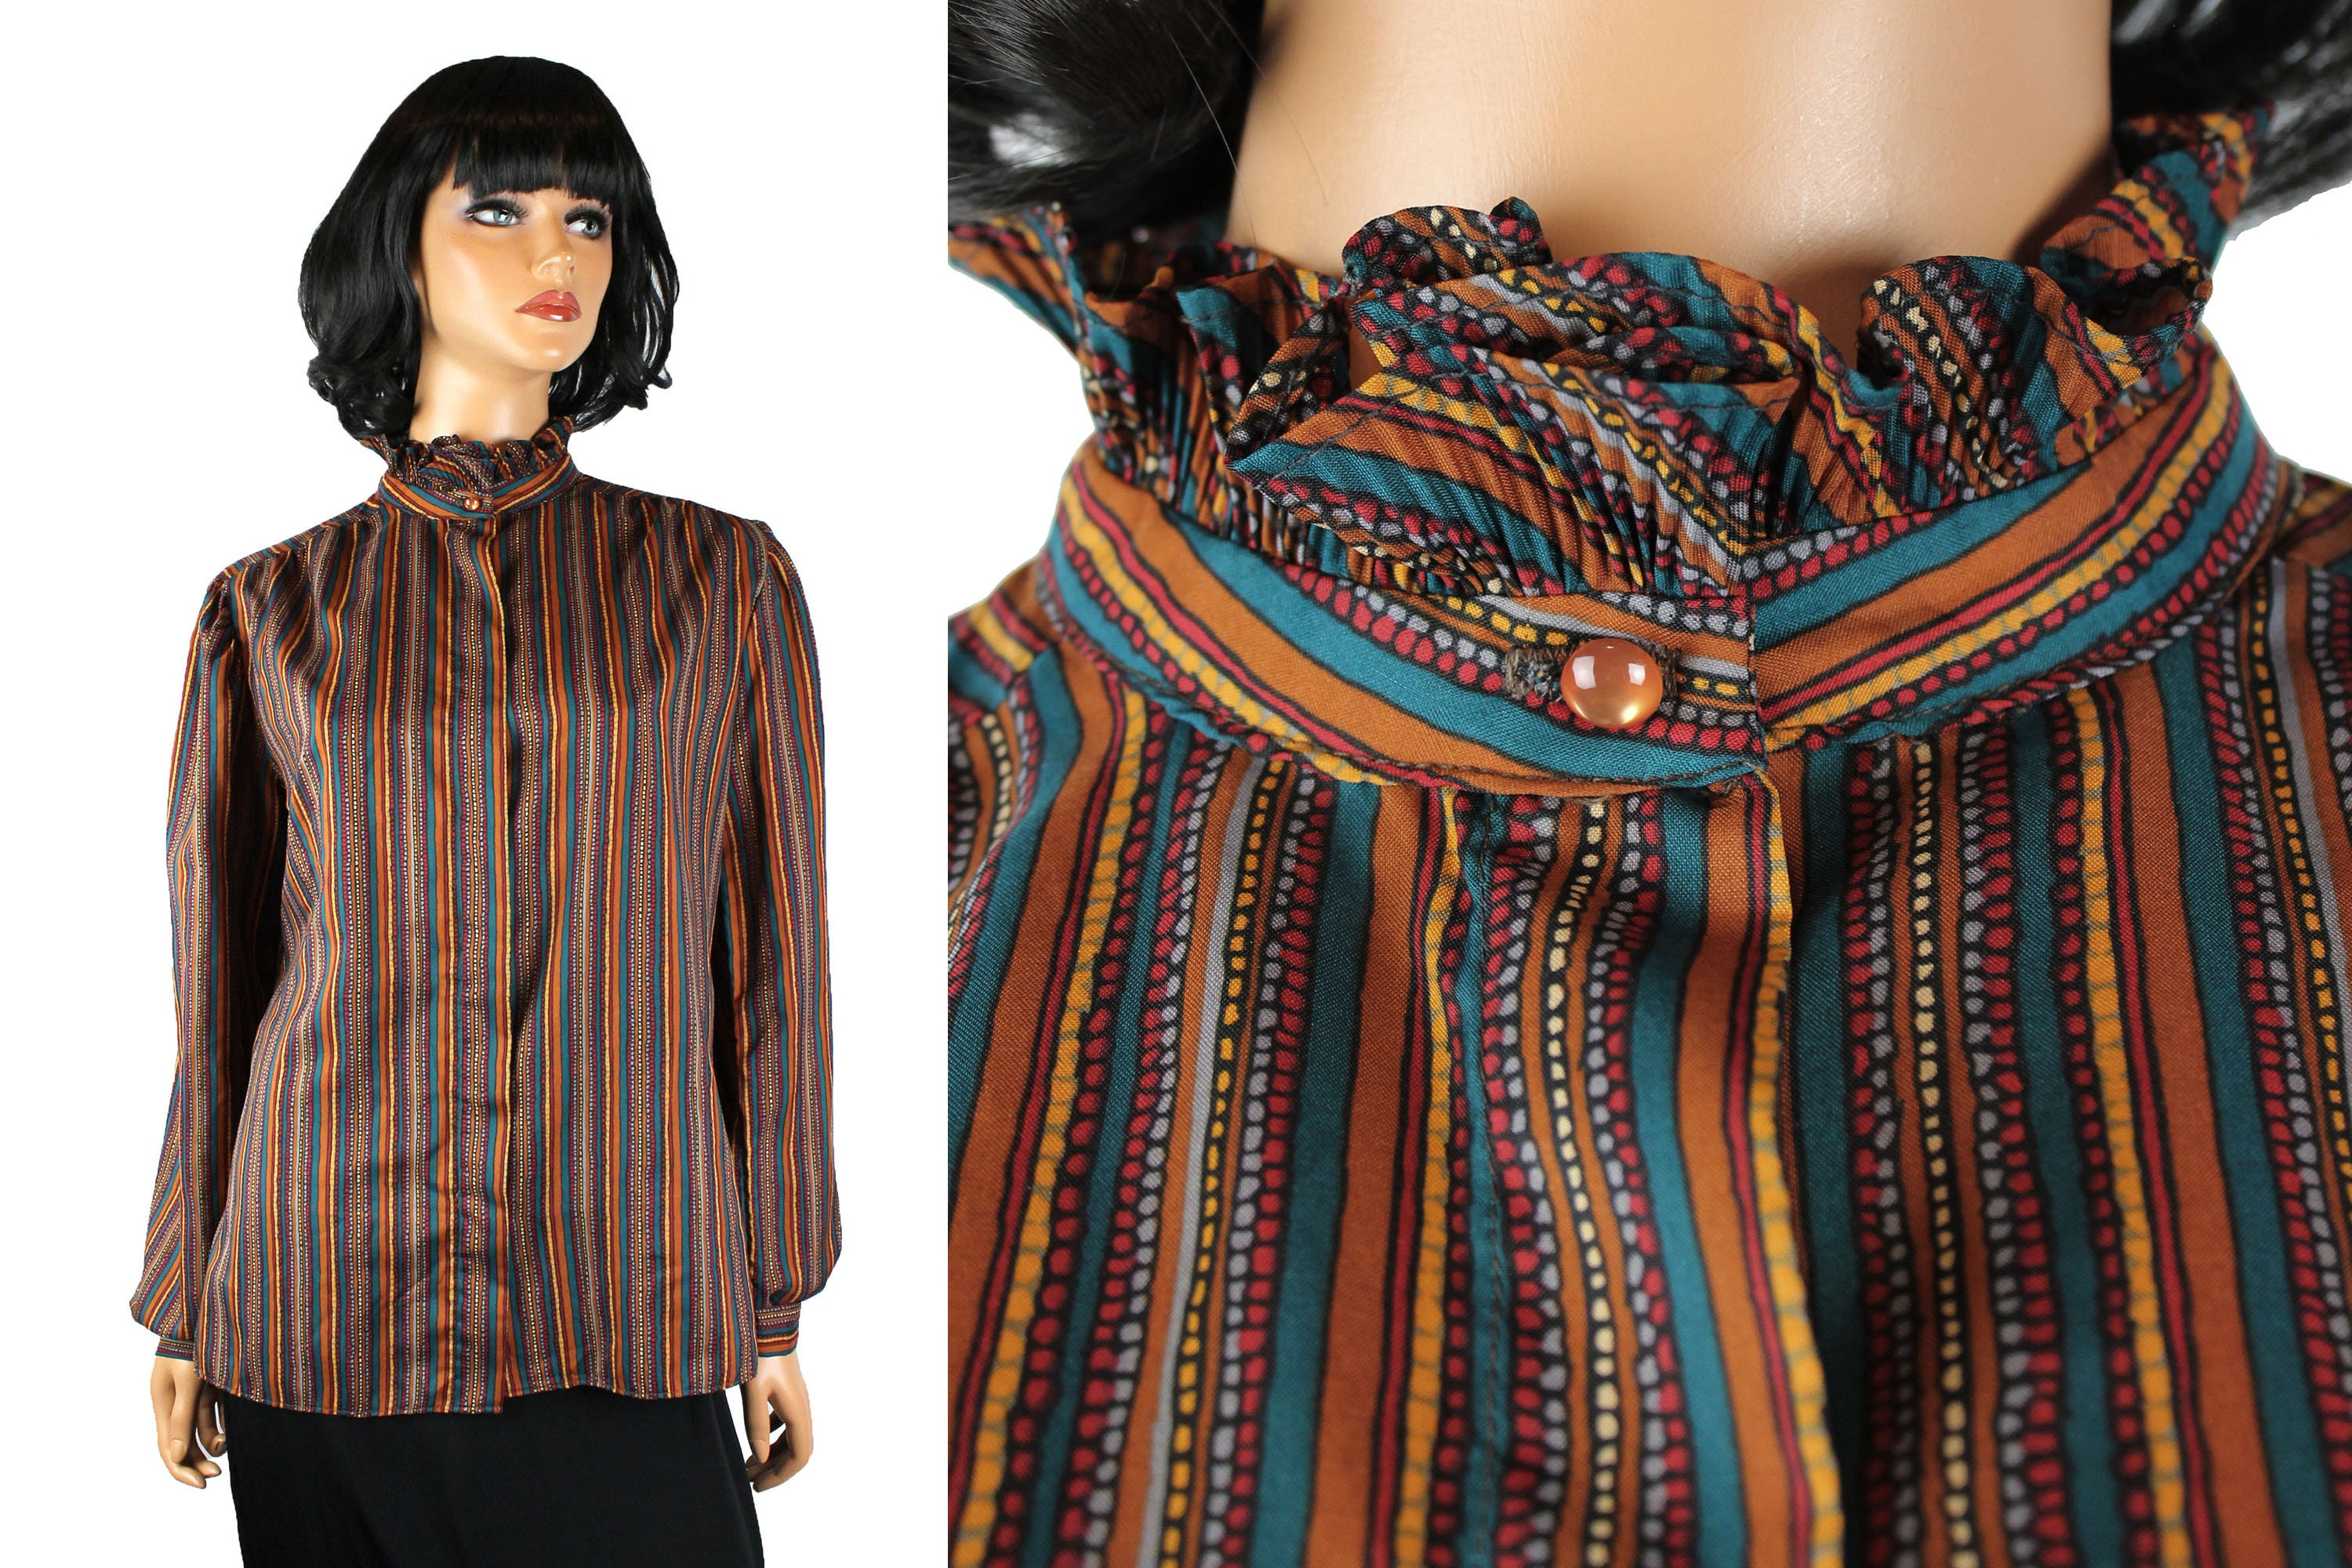 80s Dresses | Casual to Party Dresses Vintage Dress Shirt Sz 12 L Brown Red Blue Striped Ruffled Secretary Blouse $0.00 AT vintagedancer.com